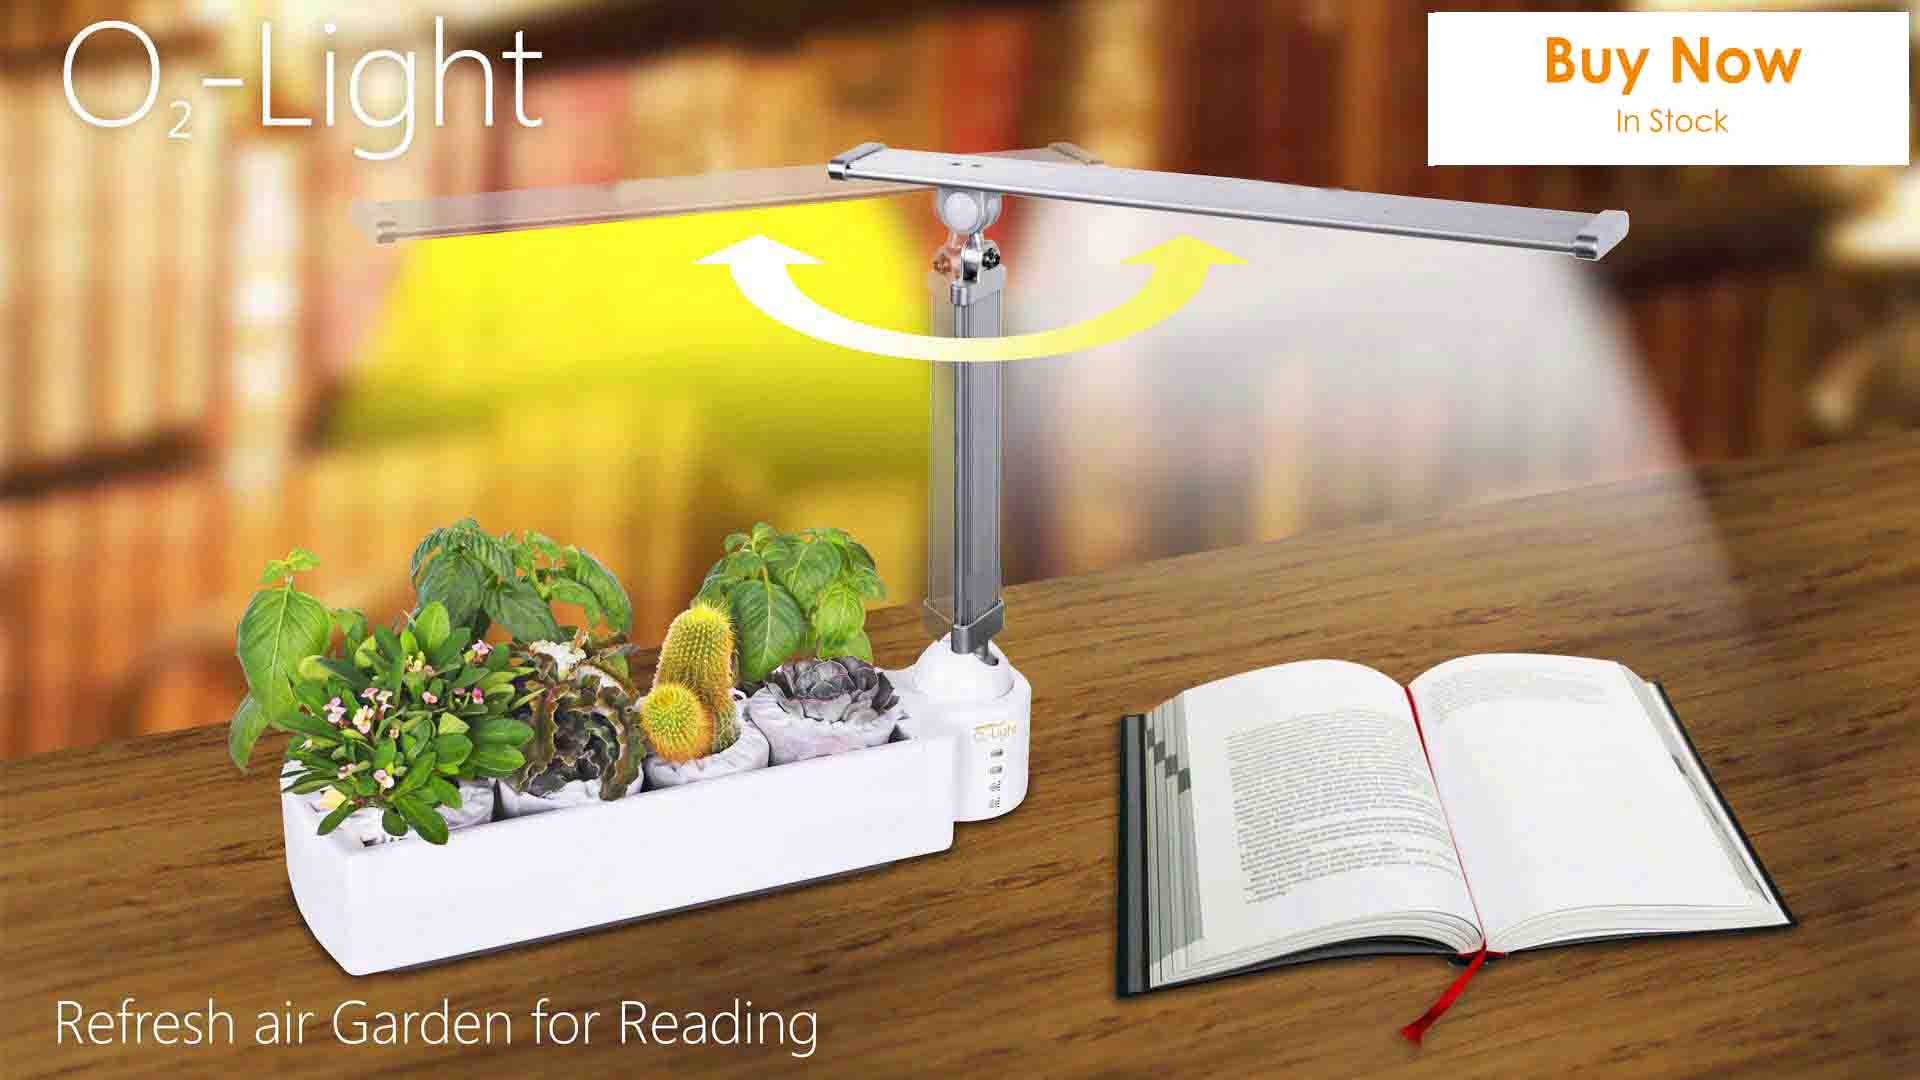 O2-Light-Hydroponics,hydroponic grow system,Refresh air when Reading